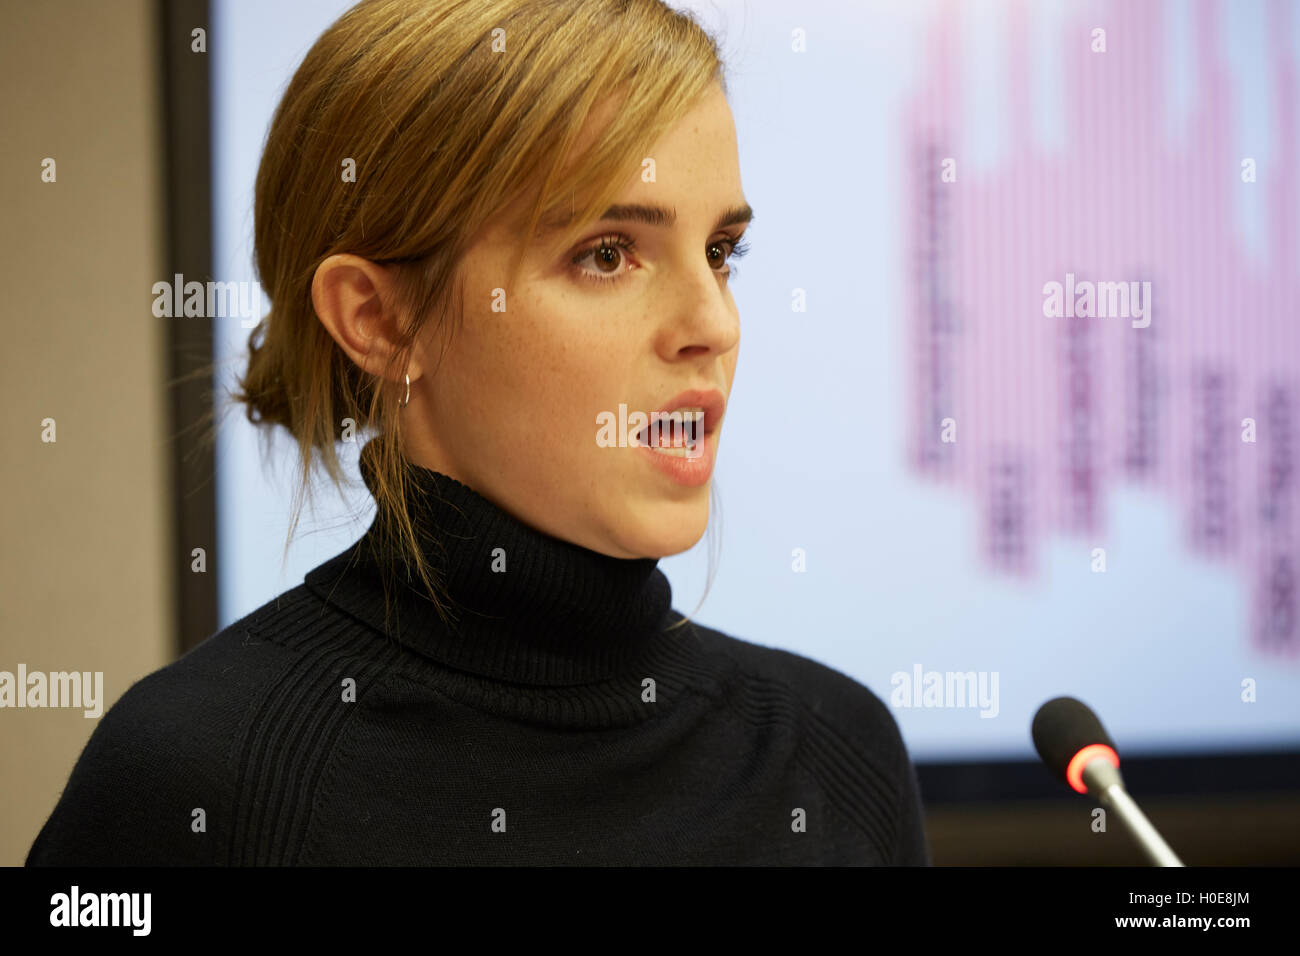 New York, United States. 20th Sep, 2016. UN Woman's Goodwill Ambassador, Emma Watson, to launch HeForShe impact - Stock Image